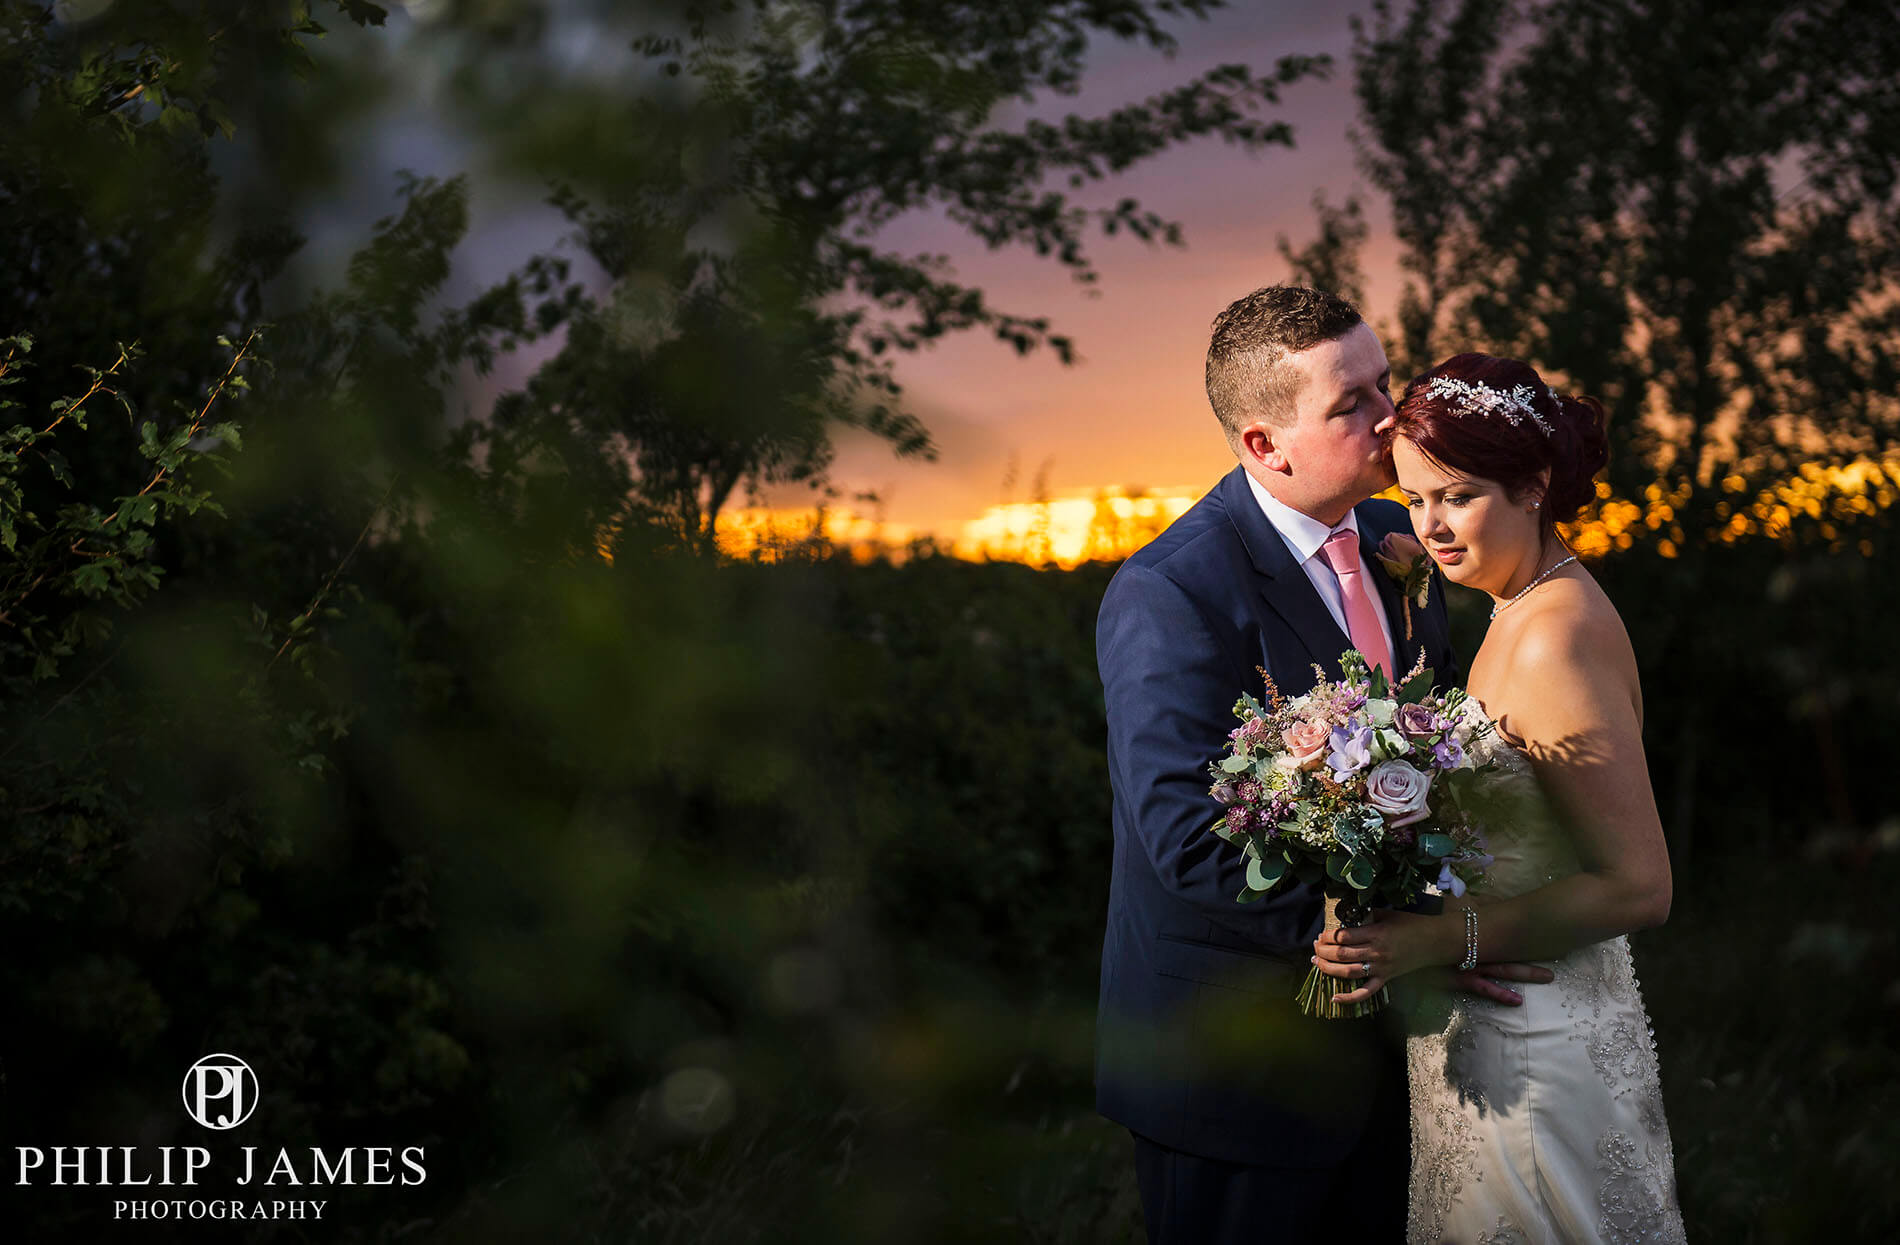 Birmingham Wedding Photographer - Philip James Photography based in Solihull (61 of 68)